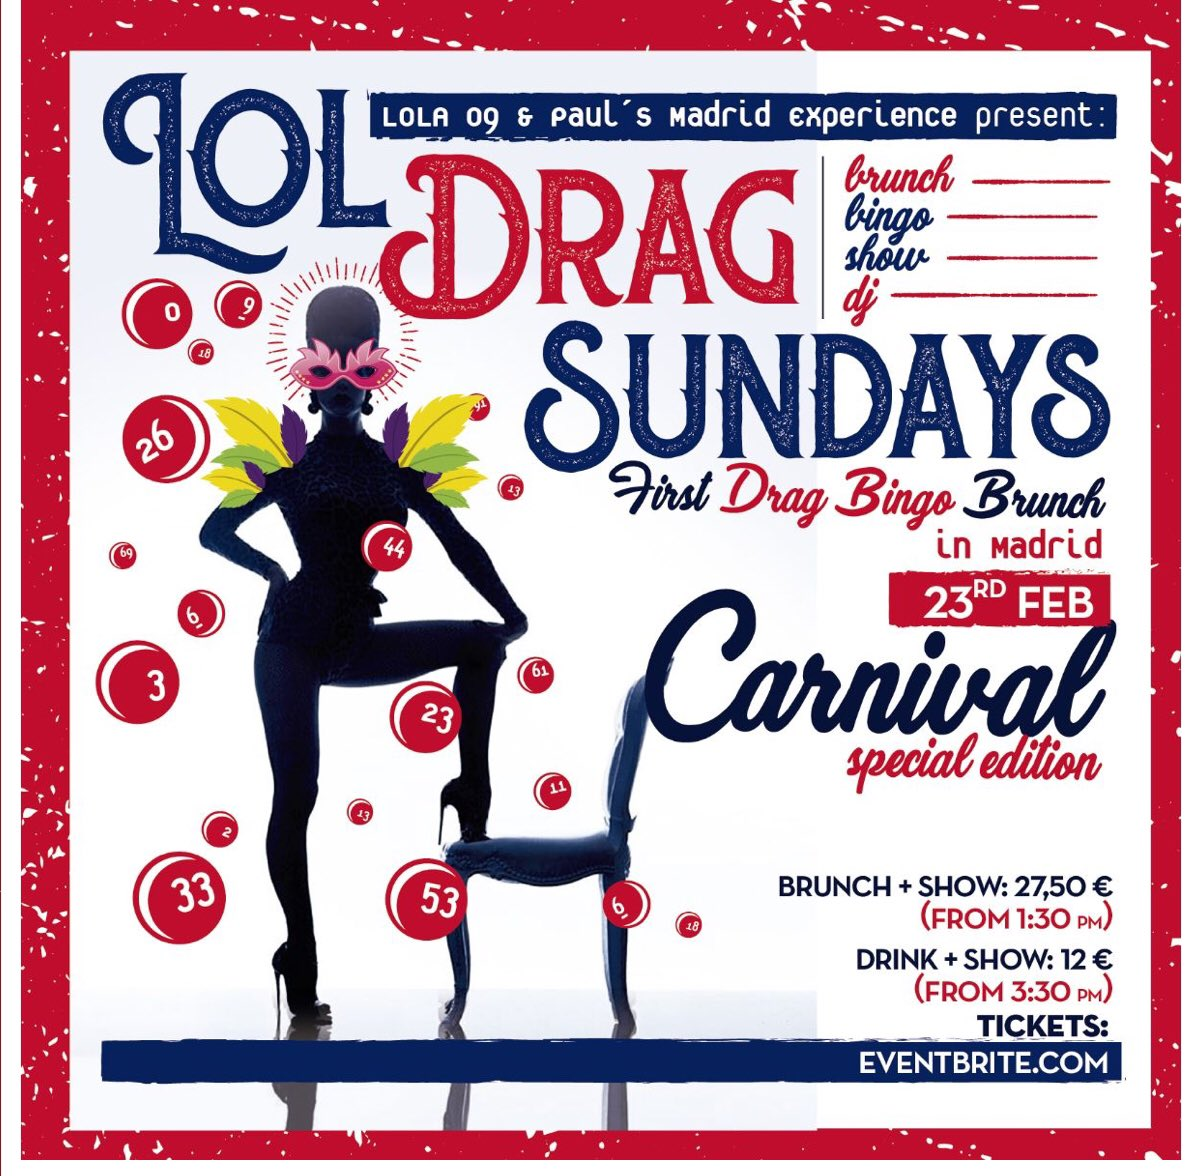 Don't miss next Sunday's #Carnival special with #Drag Queens galore , #bingo & delicious Open #Brunch. Staring @VaniaVainilla1 @PupiPoisson diamontemerybrown. Tickets > Eventbrite , Airbnb or direct from the venue @Lola09Madrid https://t.co/dYkIhIk8L4